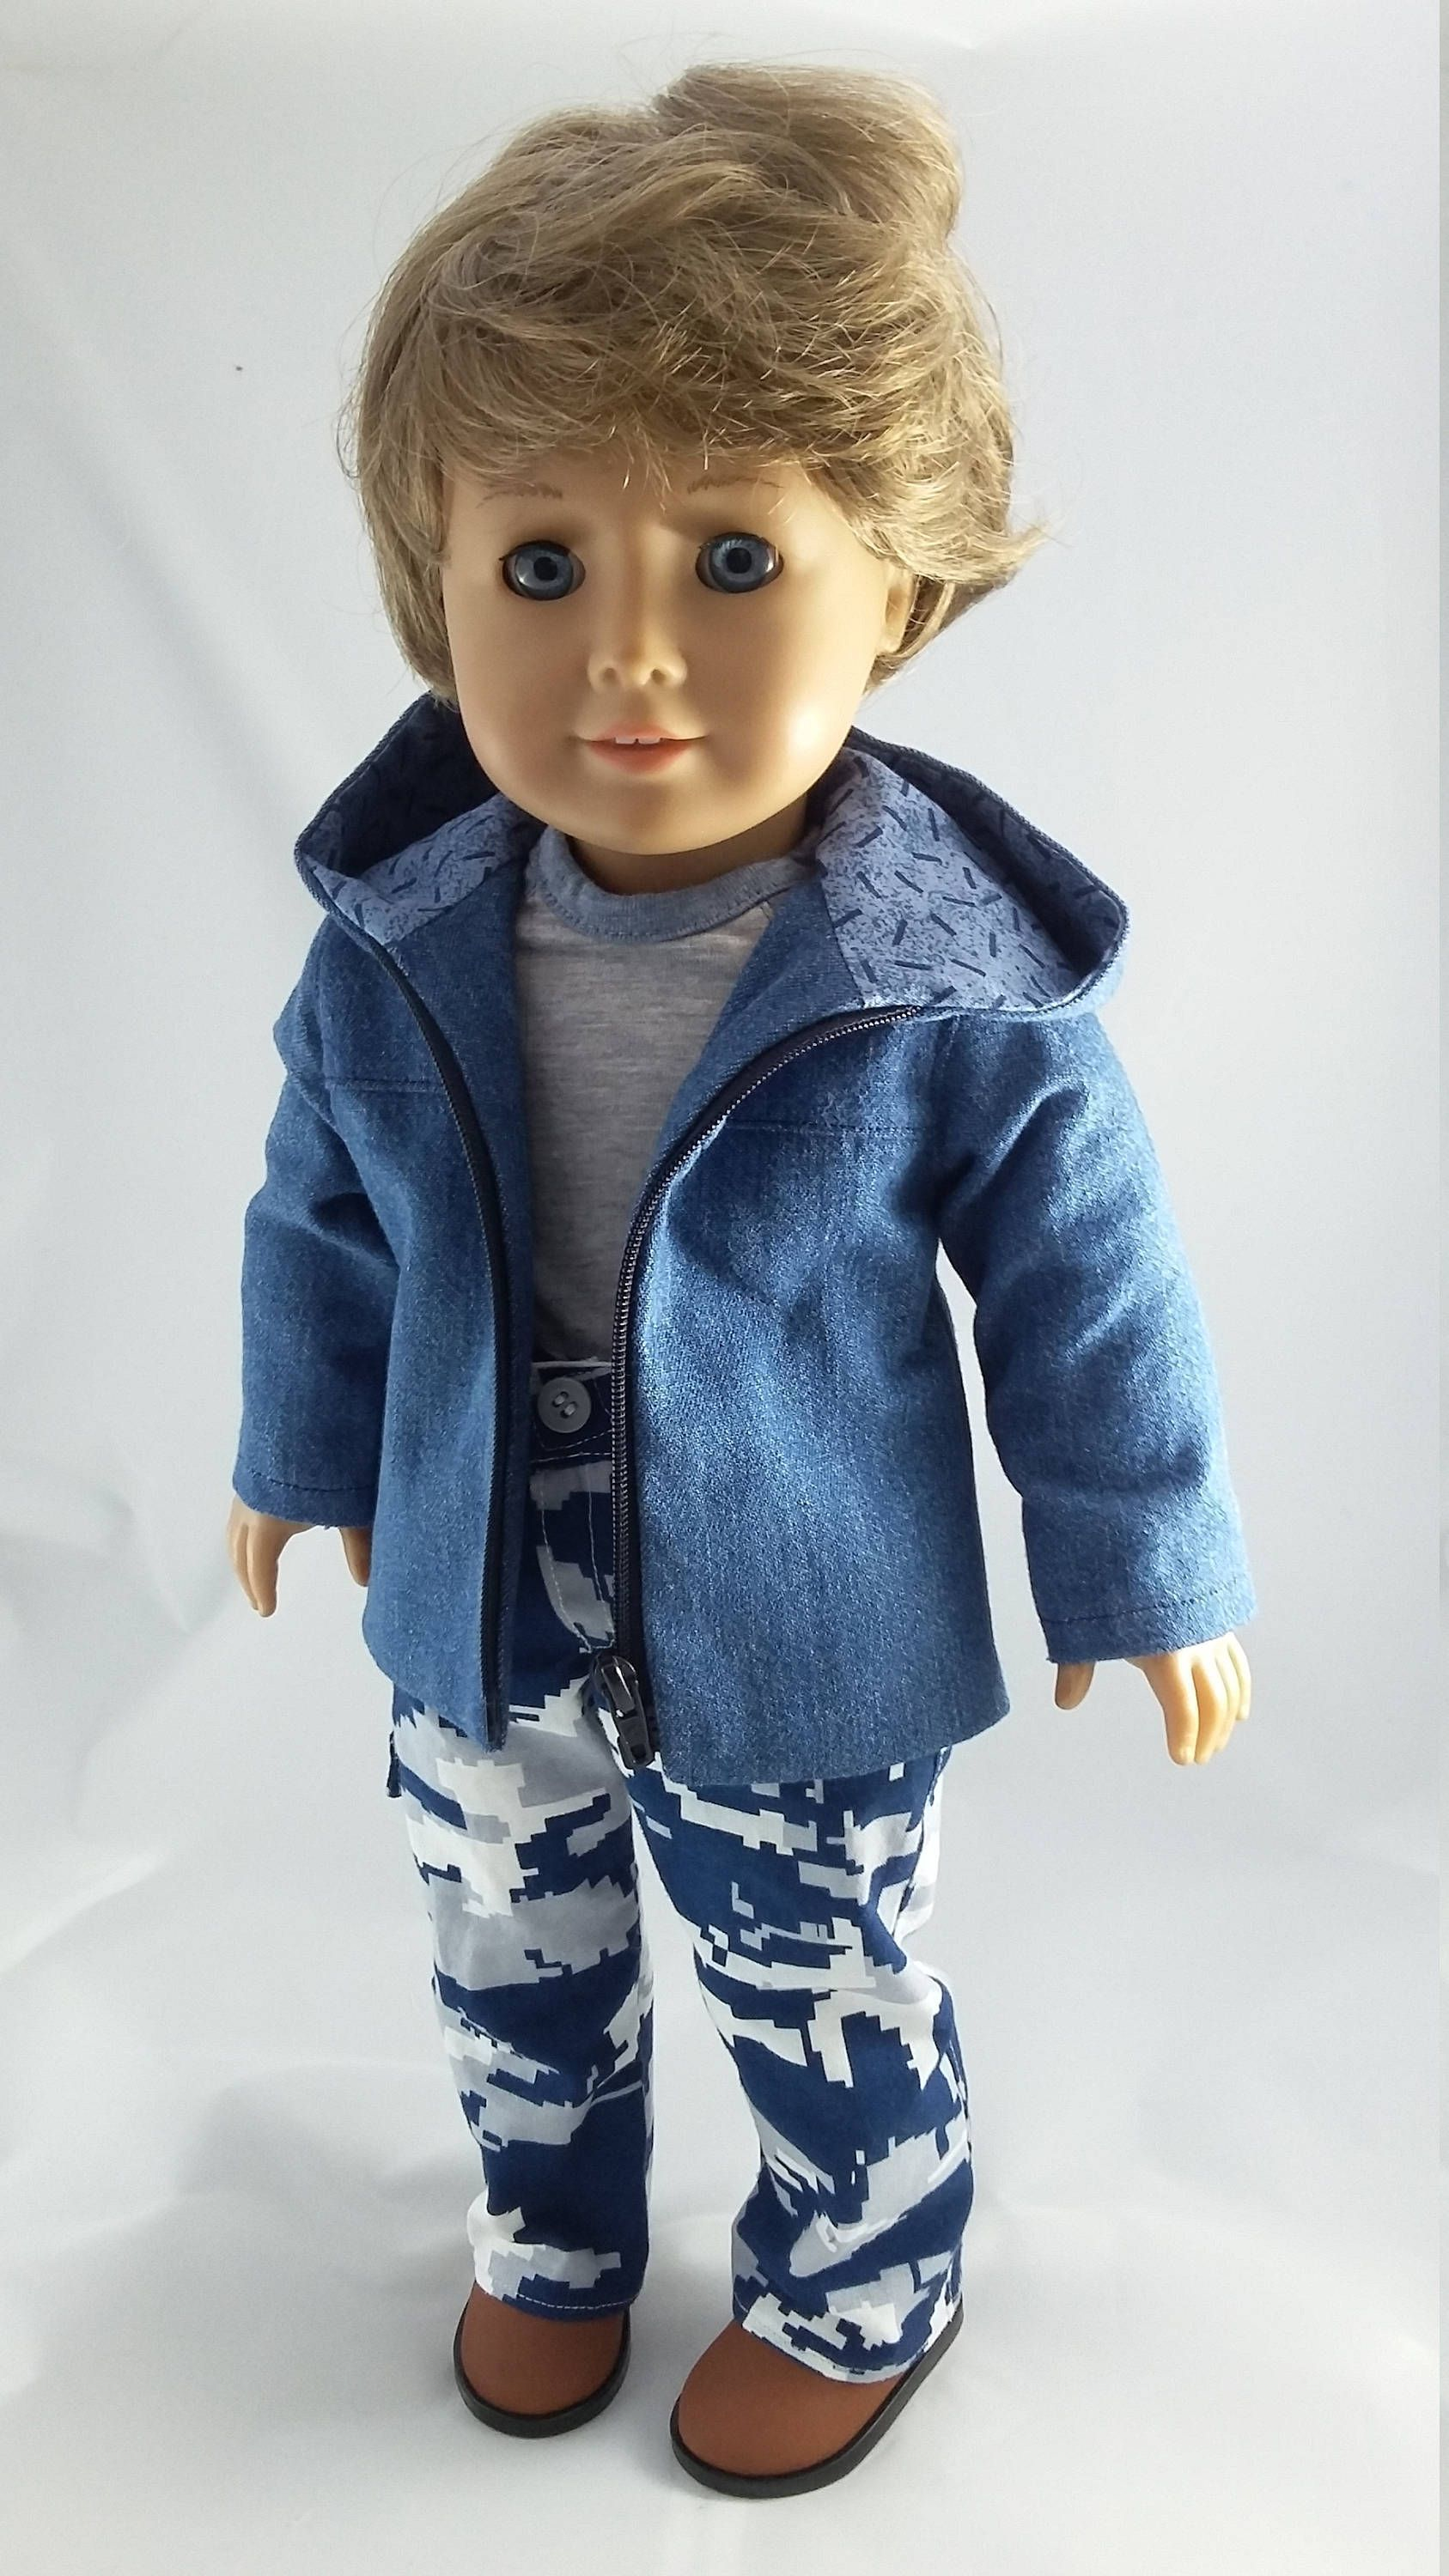 18 doll clothes - Boy's Denim hoodie and blue Camo Cargo pants by Grandmasadiescloset on Etsy #boydollsincamo 18 doll clothes - Boy's Denim hoodie and blue Camo Cargo pants by Grandmasadiescloset on Etsy #boydollsincamo 18 doll clothes - Boy's Denim hoodie and blue Camo Cargo pants by Grandmasadiescloset on Etsy #boydollsincamo 18 doll clothes - Boy's Denim hoodie and blue Camo Cargo pants by Grandmasadiescloset on Etsy #boydollsincamo 18 doll clothes - Boy's Denim hoodie and blue Camo Cargo pa #boydollsincamo